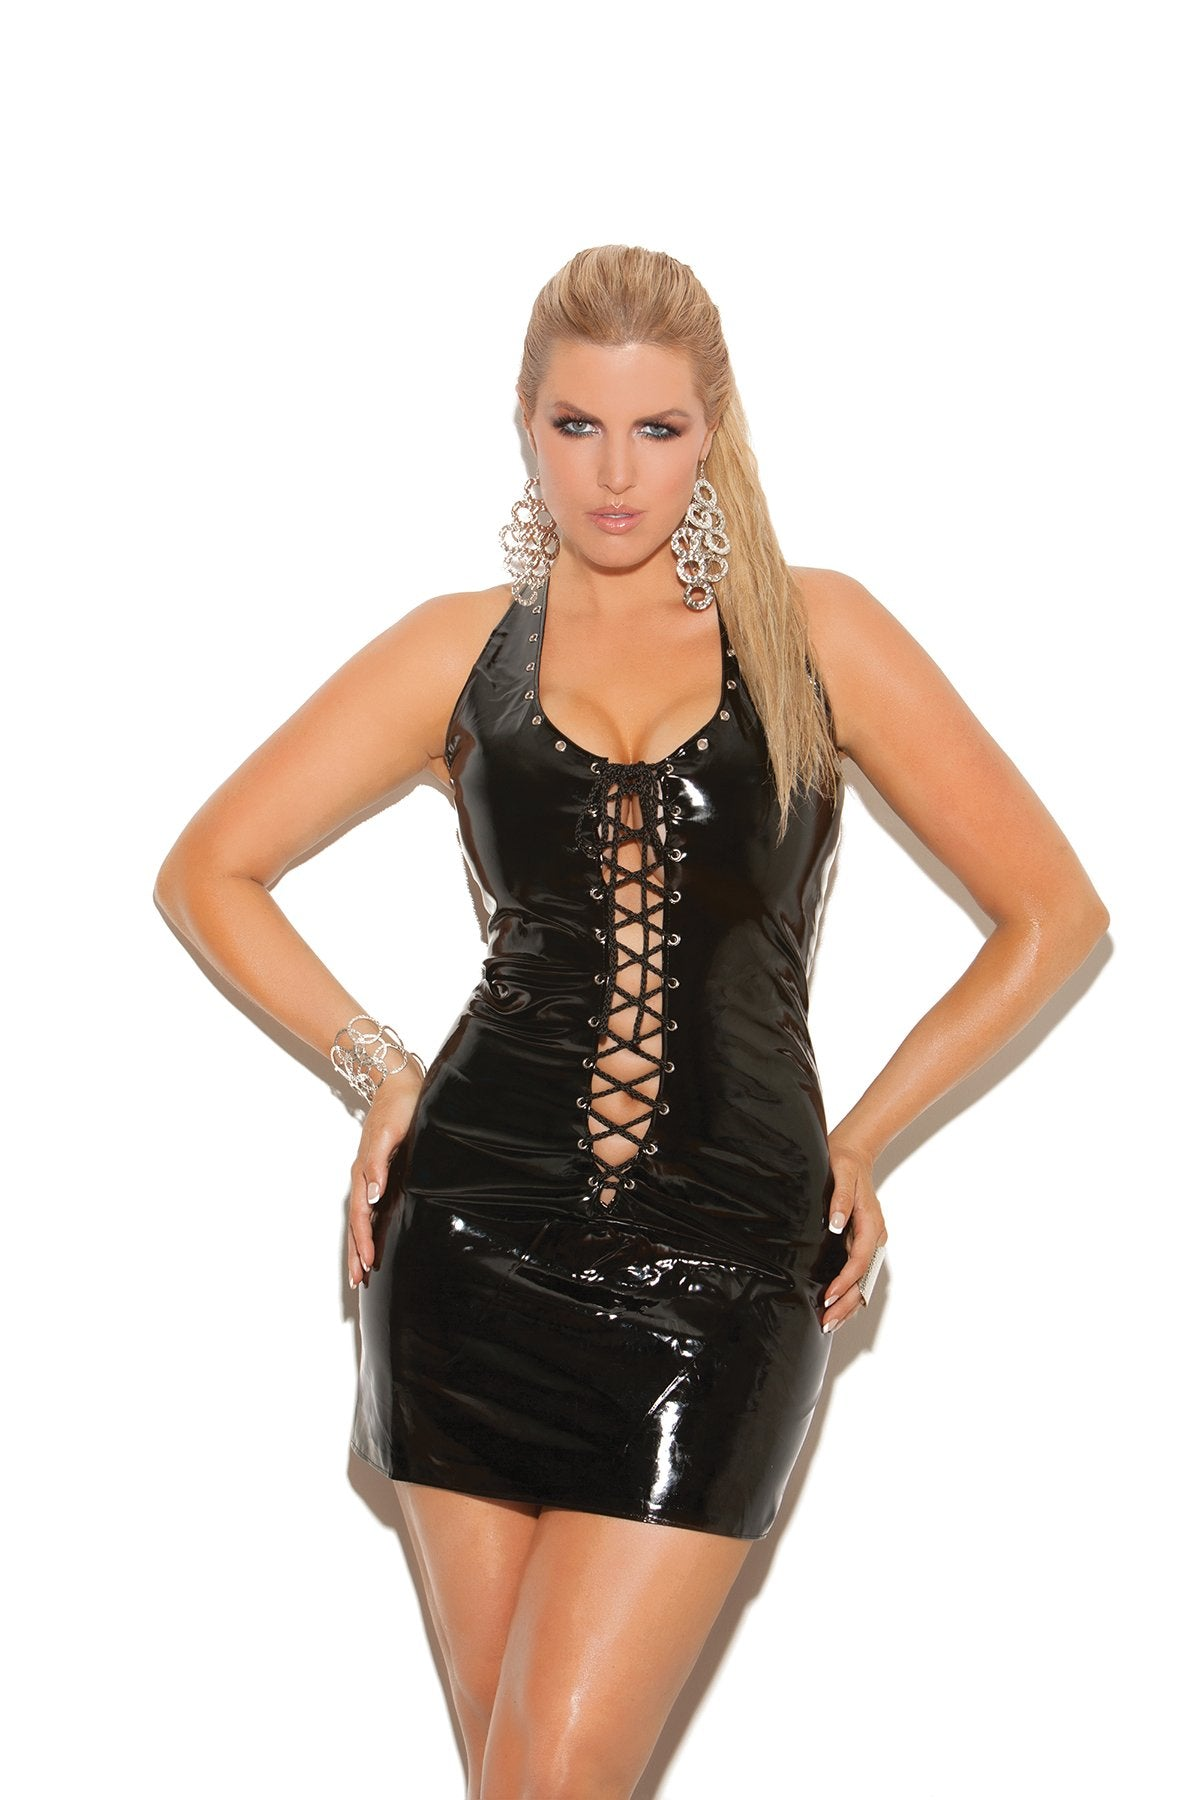 Vinyl Fetish Mini Dress with Lace Up Front and Back club wear size smallcolor blackNakees